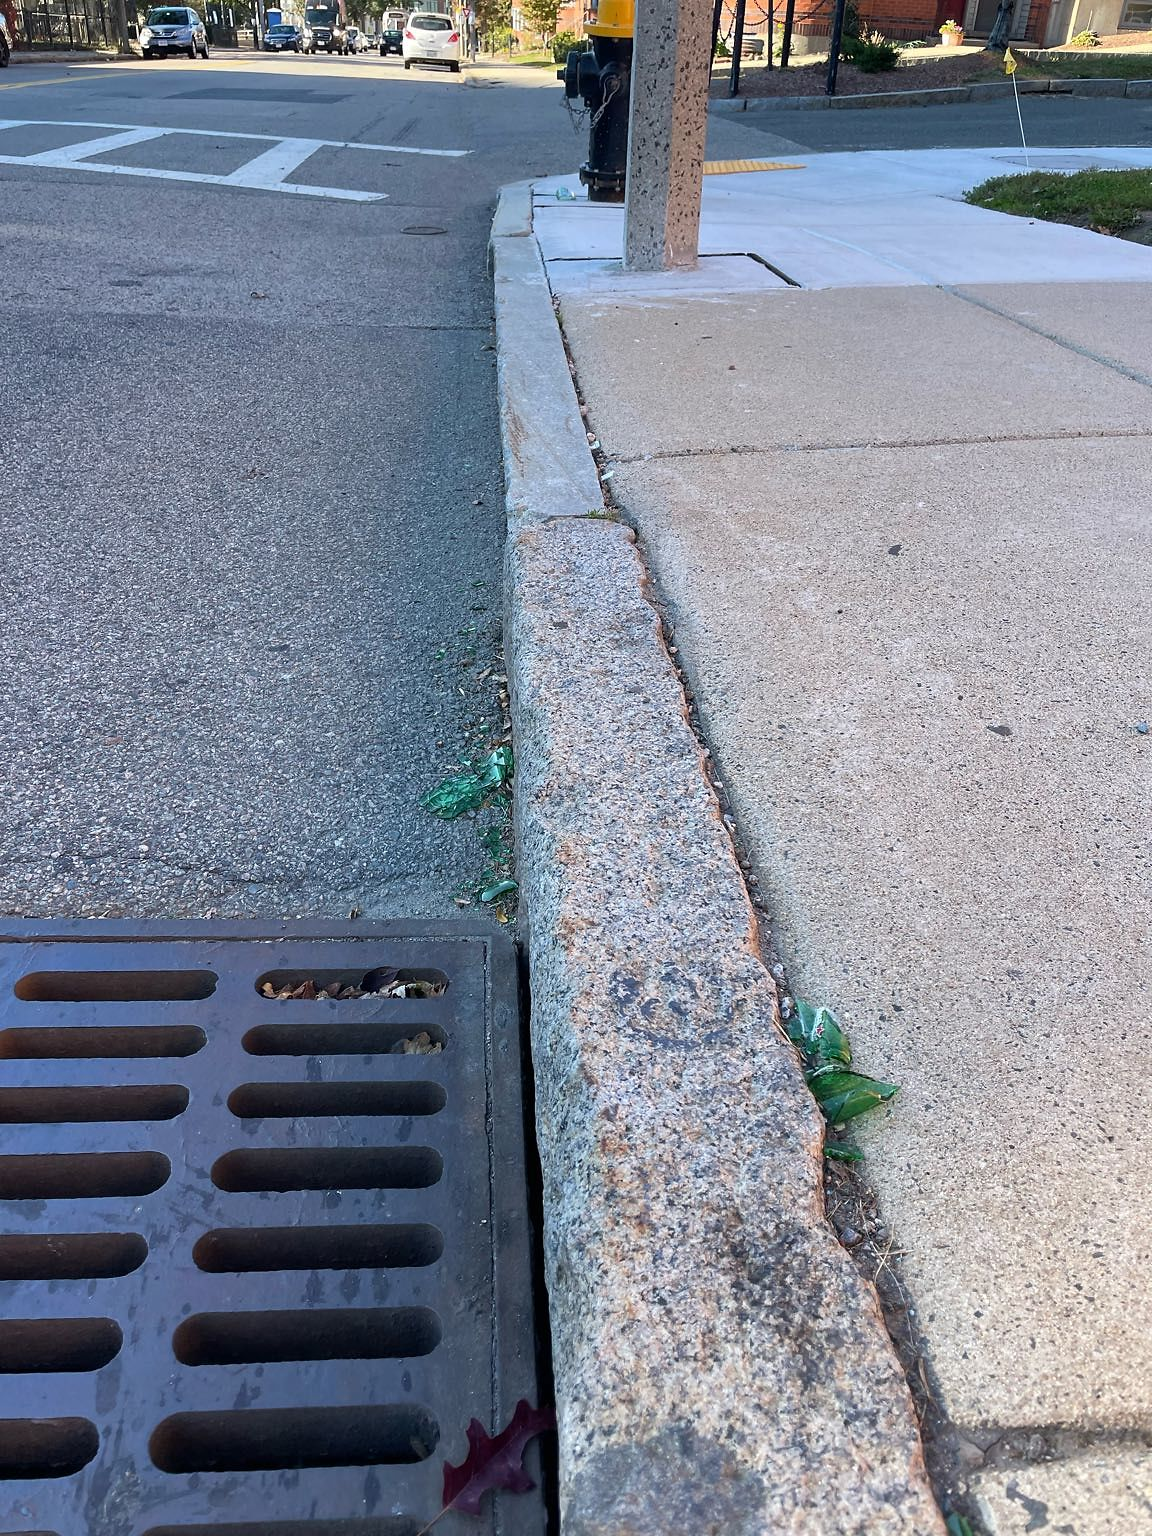 Broken glass bottle shards on curb and in gutter from here to fire hydrant